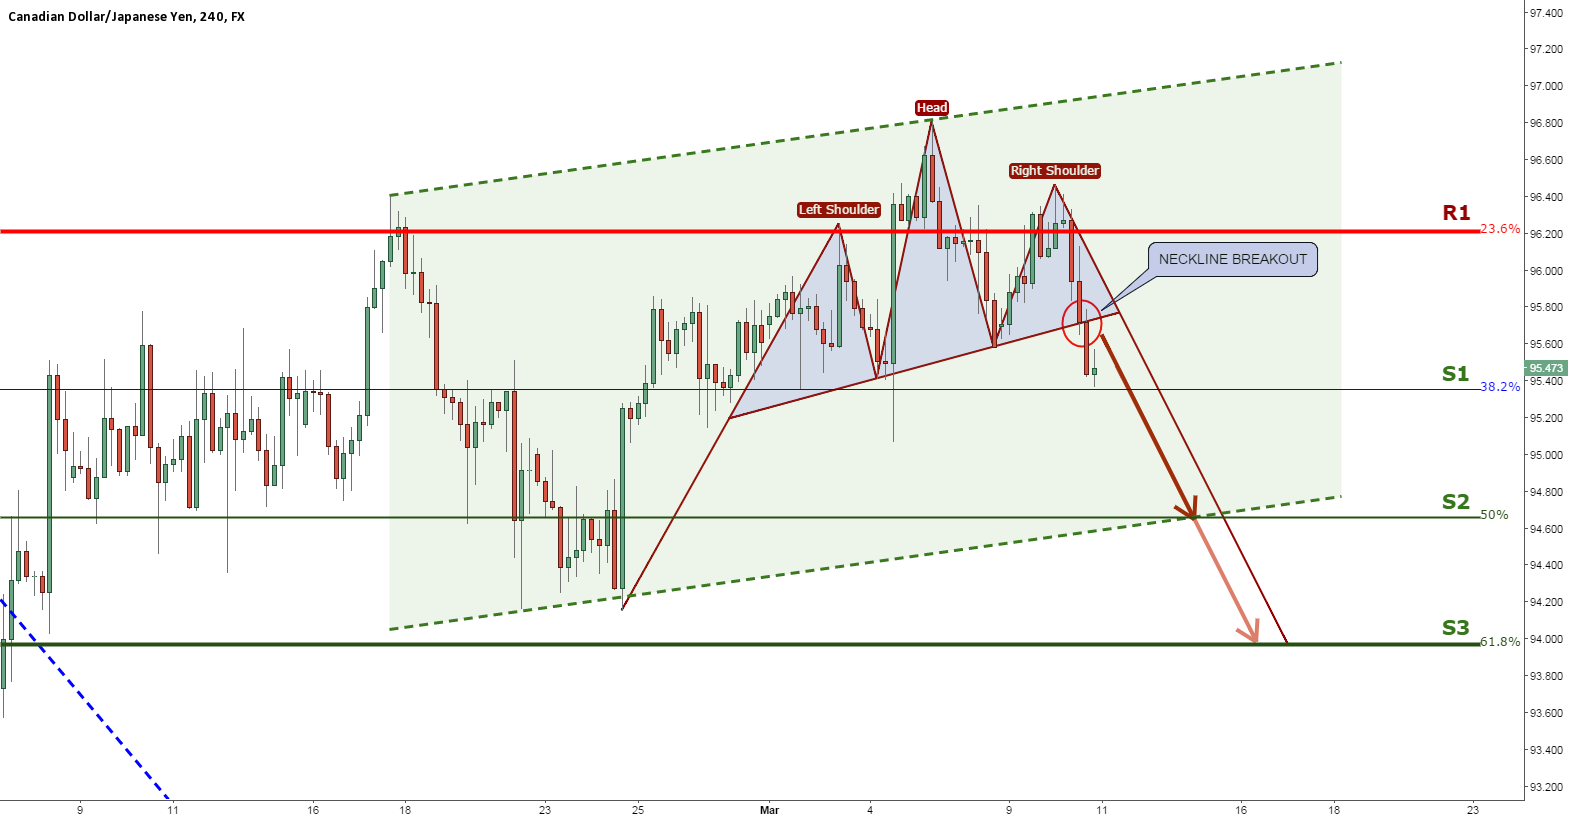 CADJPY - BEARS TAKING OVER